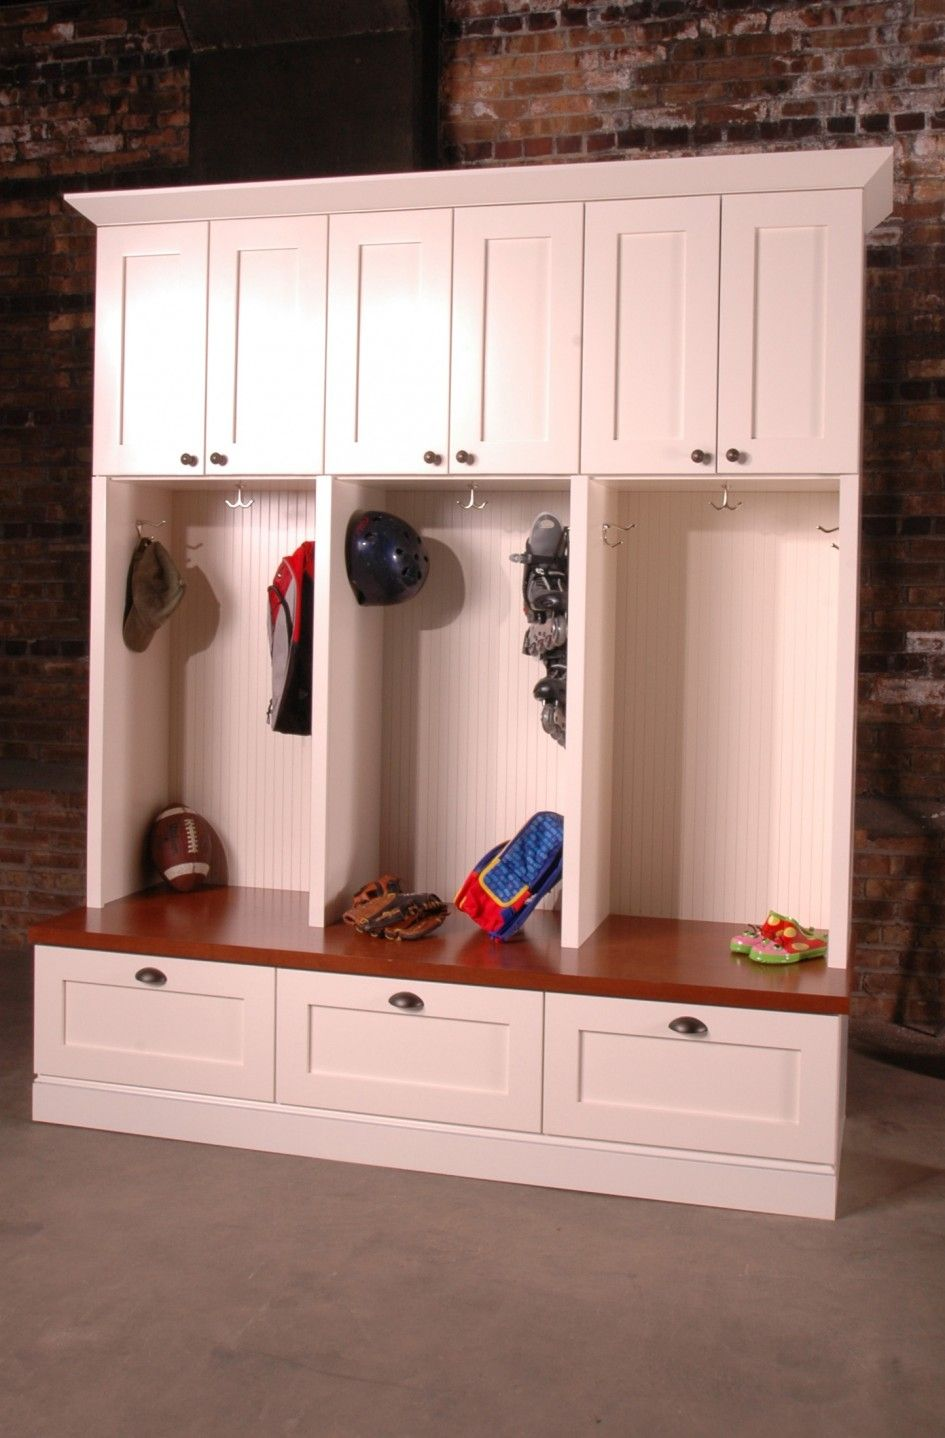 Furniture Awesome White Wooden Mudroom Lockers With Opened Clothing Hanger And Drawers As Storage Triple Pair Doors At Top For Inspiring